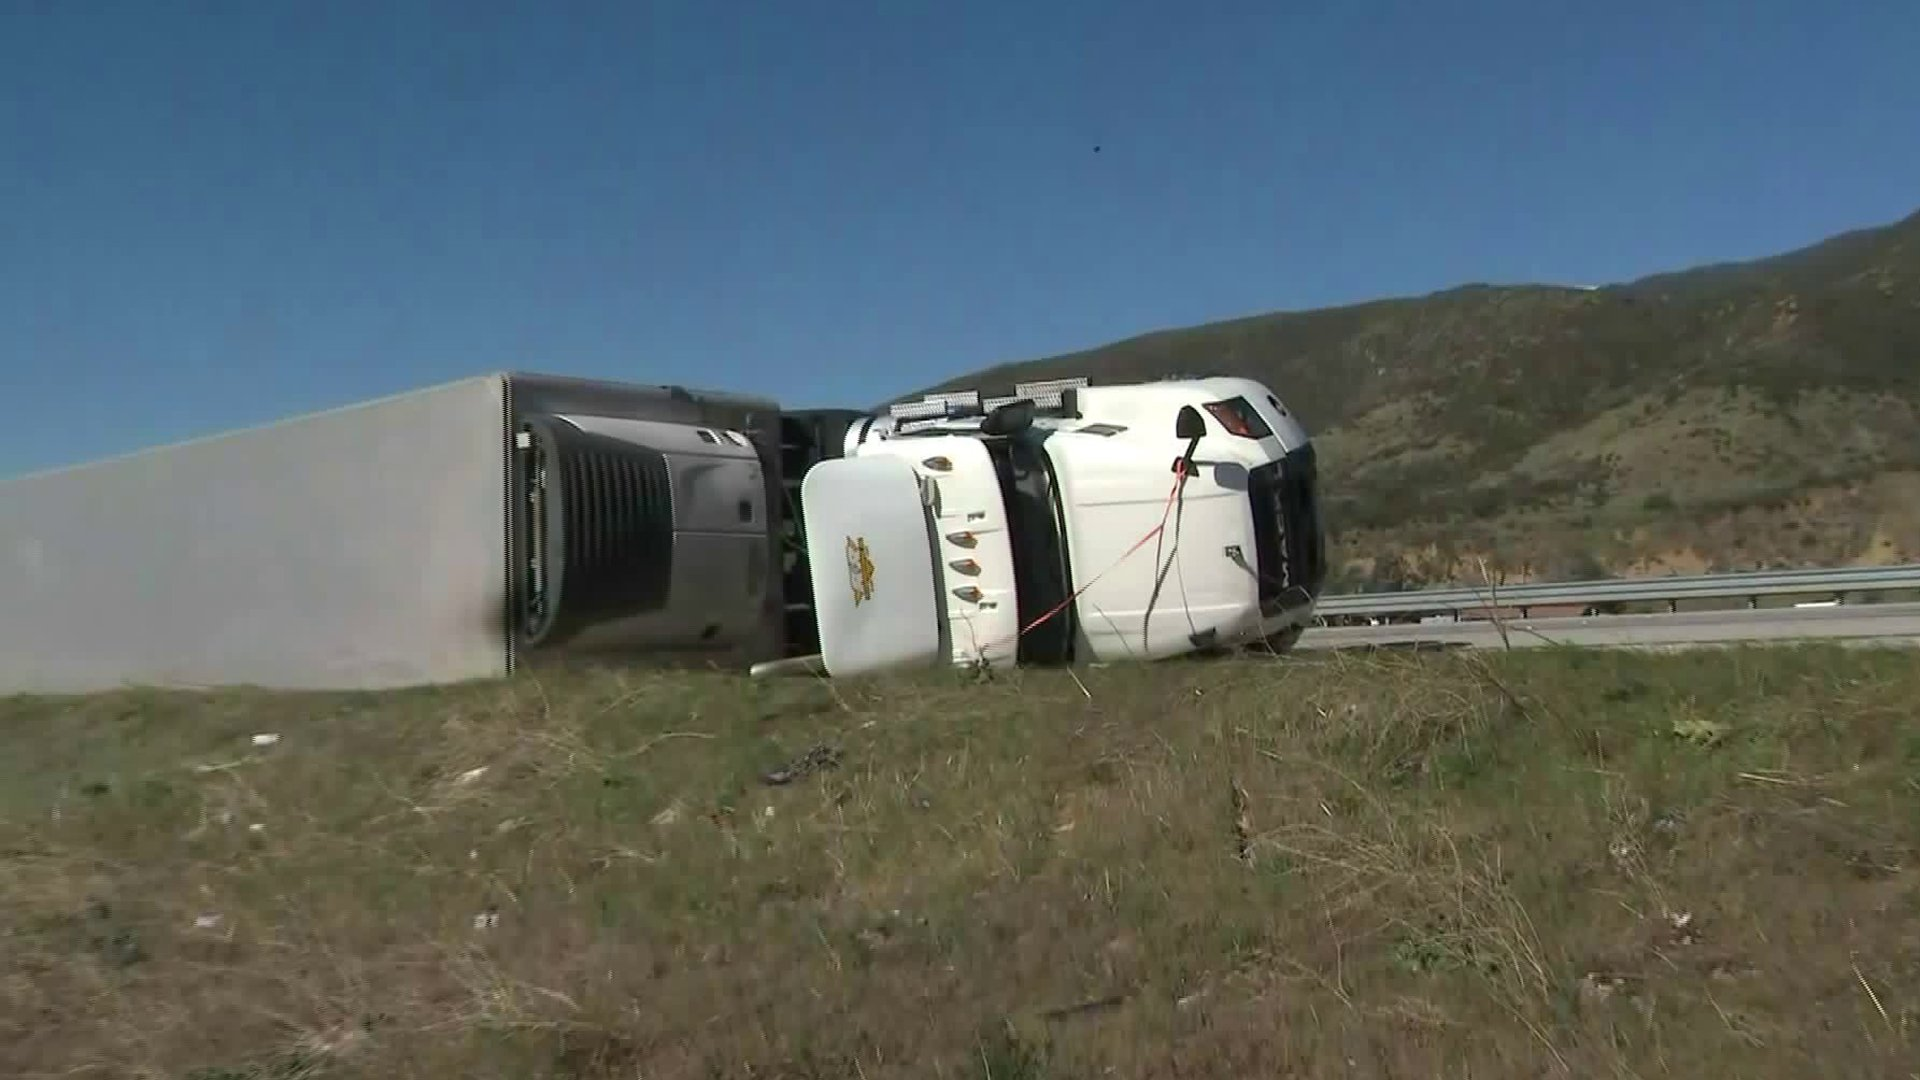 A semitruck came to rest on its side after being knocked over by high winds on the 15 Freeway in Fontana on Feb. 11, 2020. (Credit: KTLA)